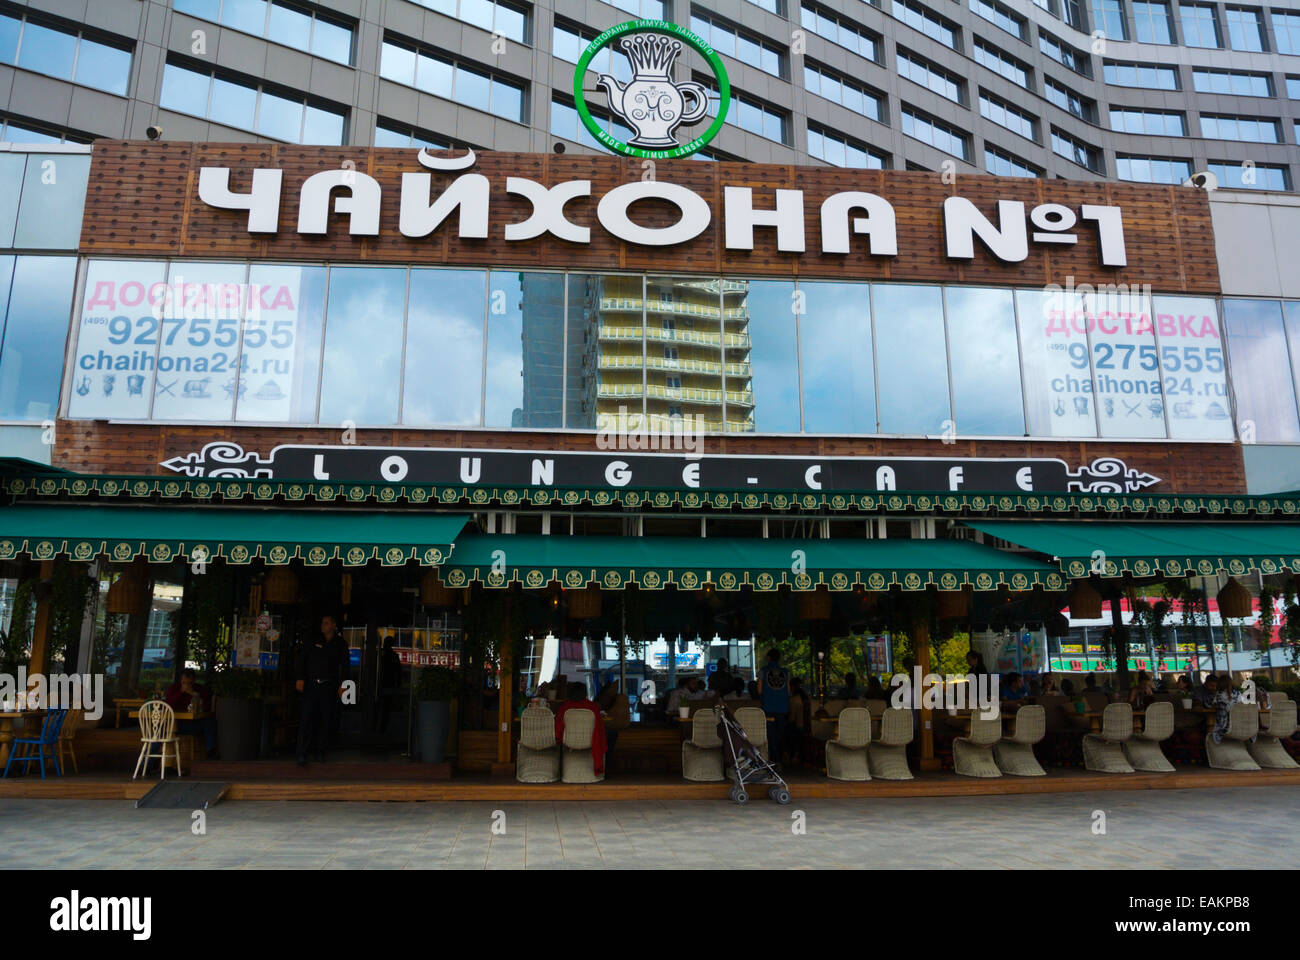 Tea room and cafe, Novy Arbat, New Arbat avenue, central Moscow, Russia, Europe - Stock Image